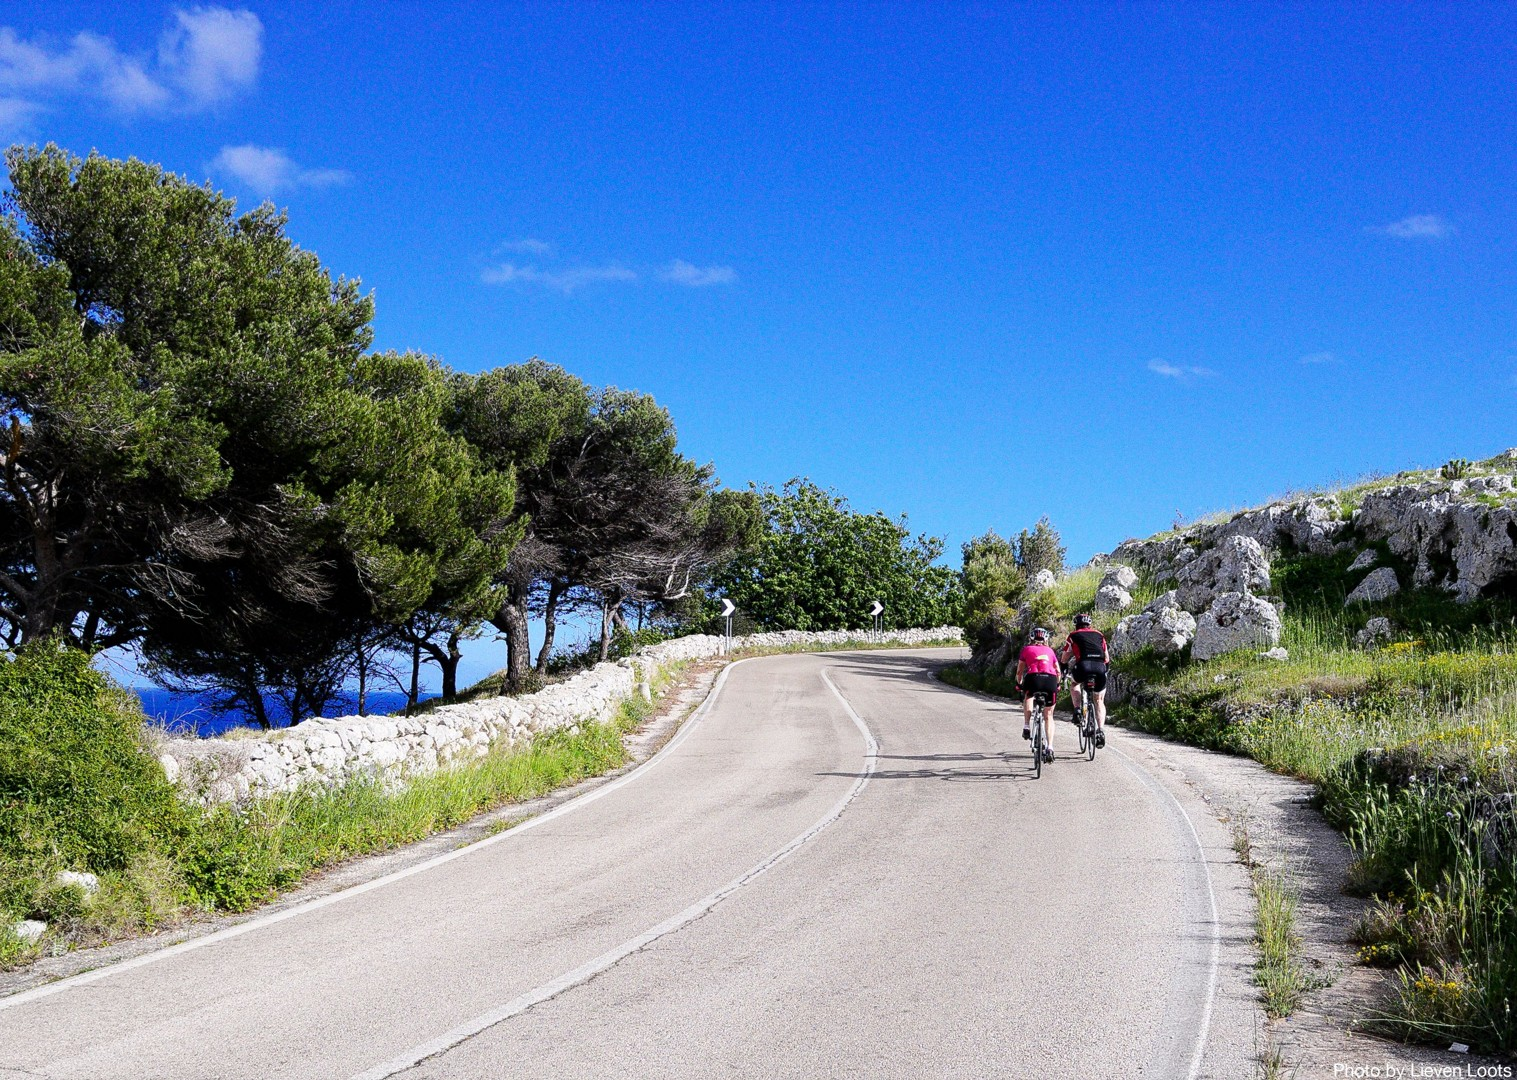 italy-puglia-self-guided-cycling.jpg - Italy - Puglia - The Beautiful South - Self-Guided Road Cycling Holiday - Road Cycling